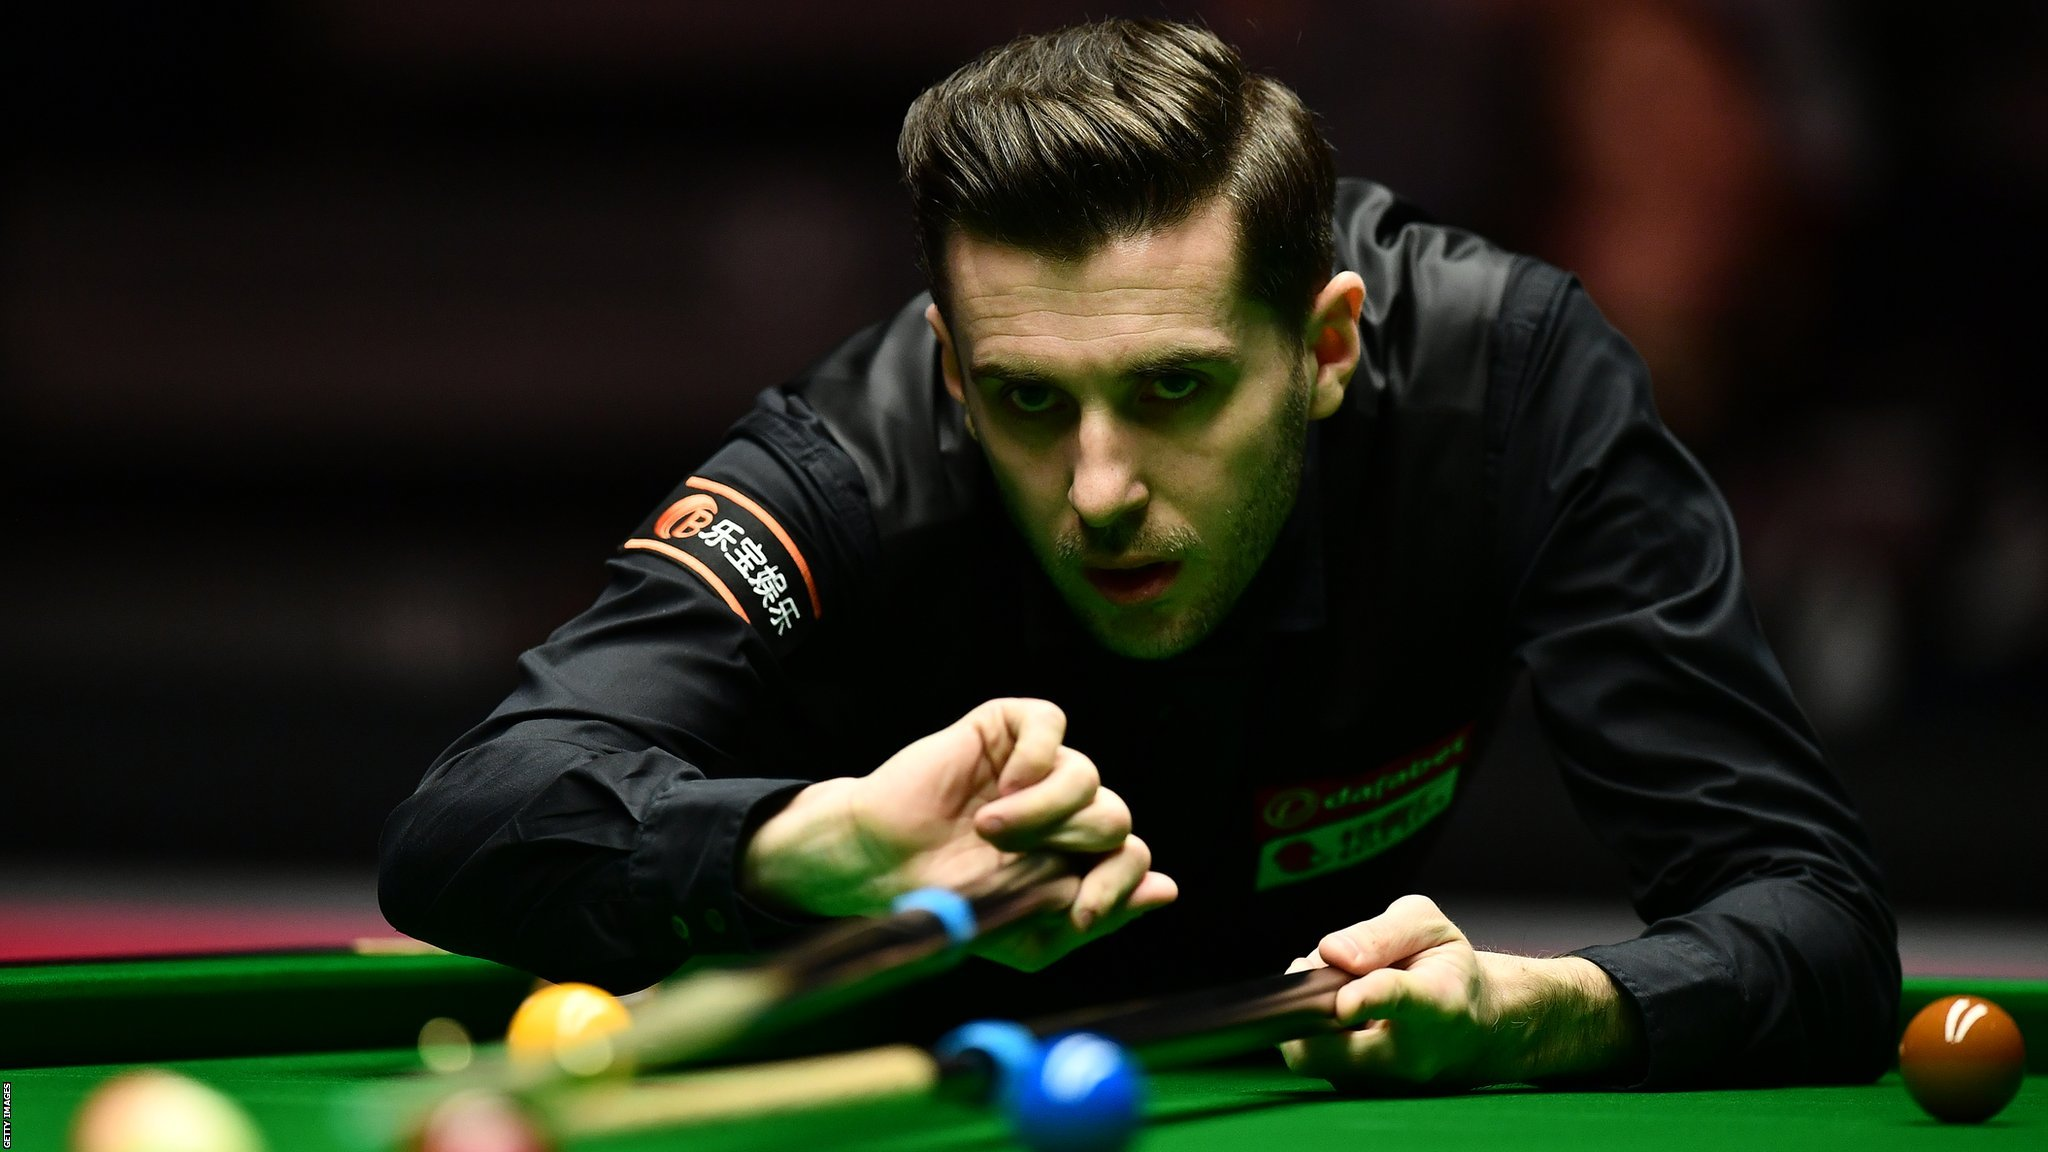 UK Snooker Championship 2017: BBC coverage times & schedule